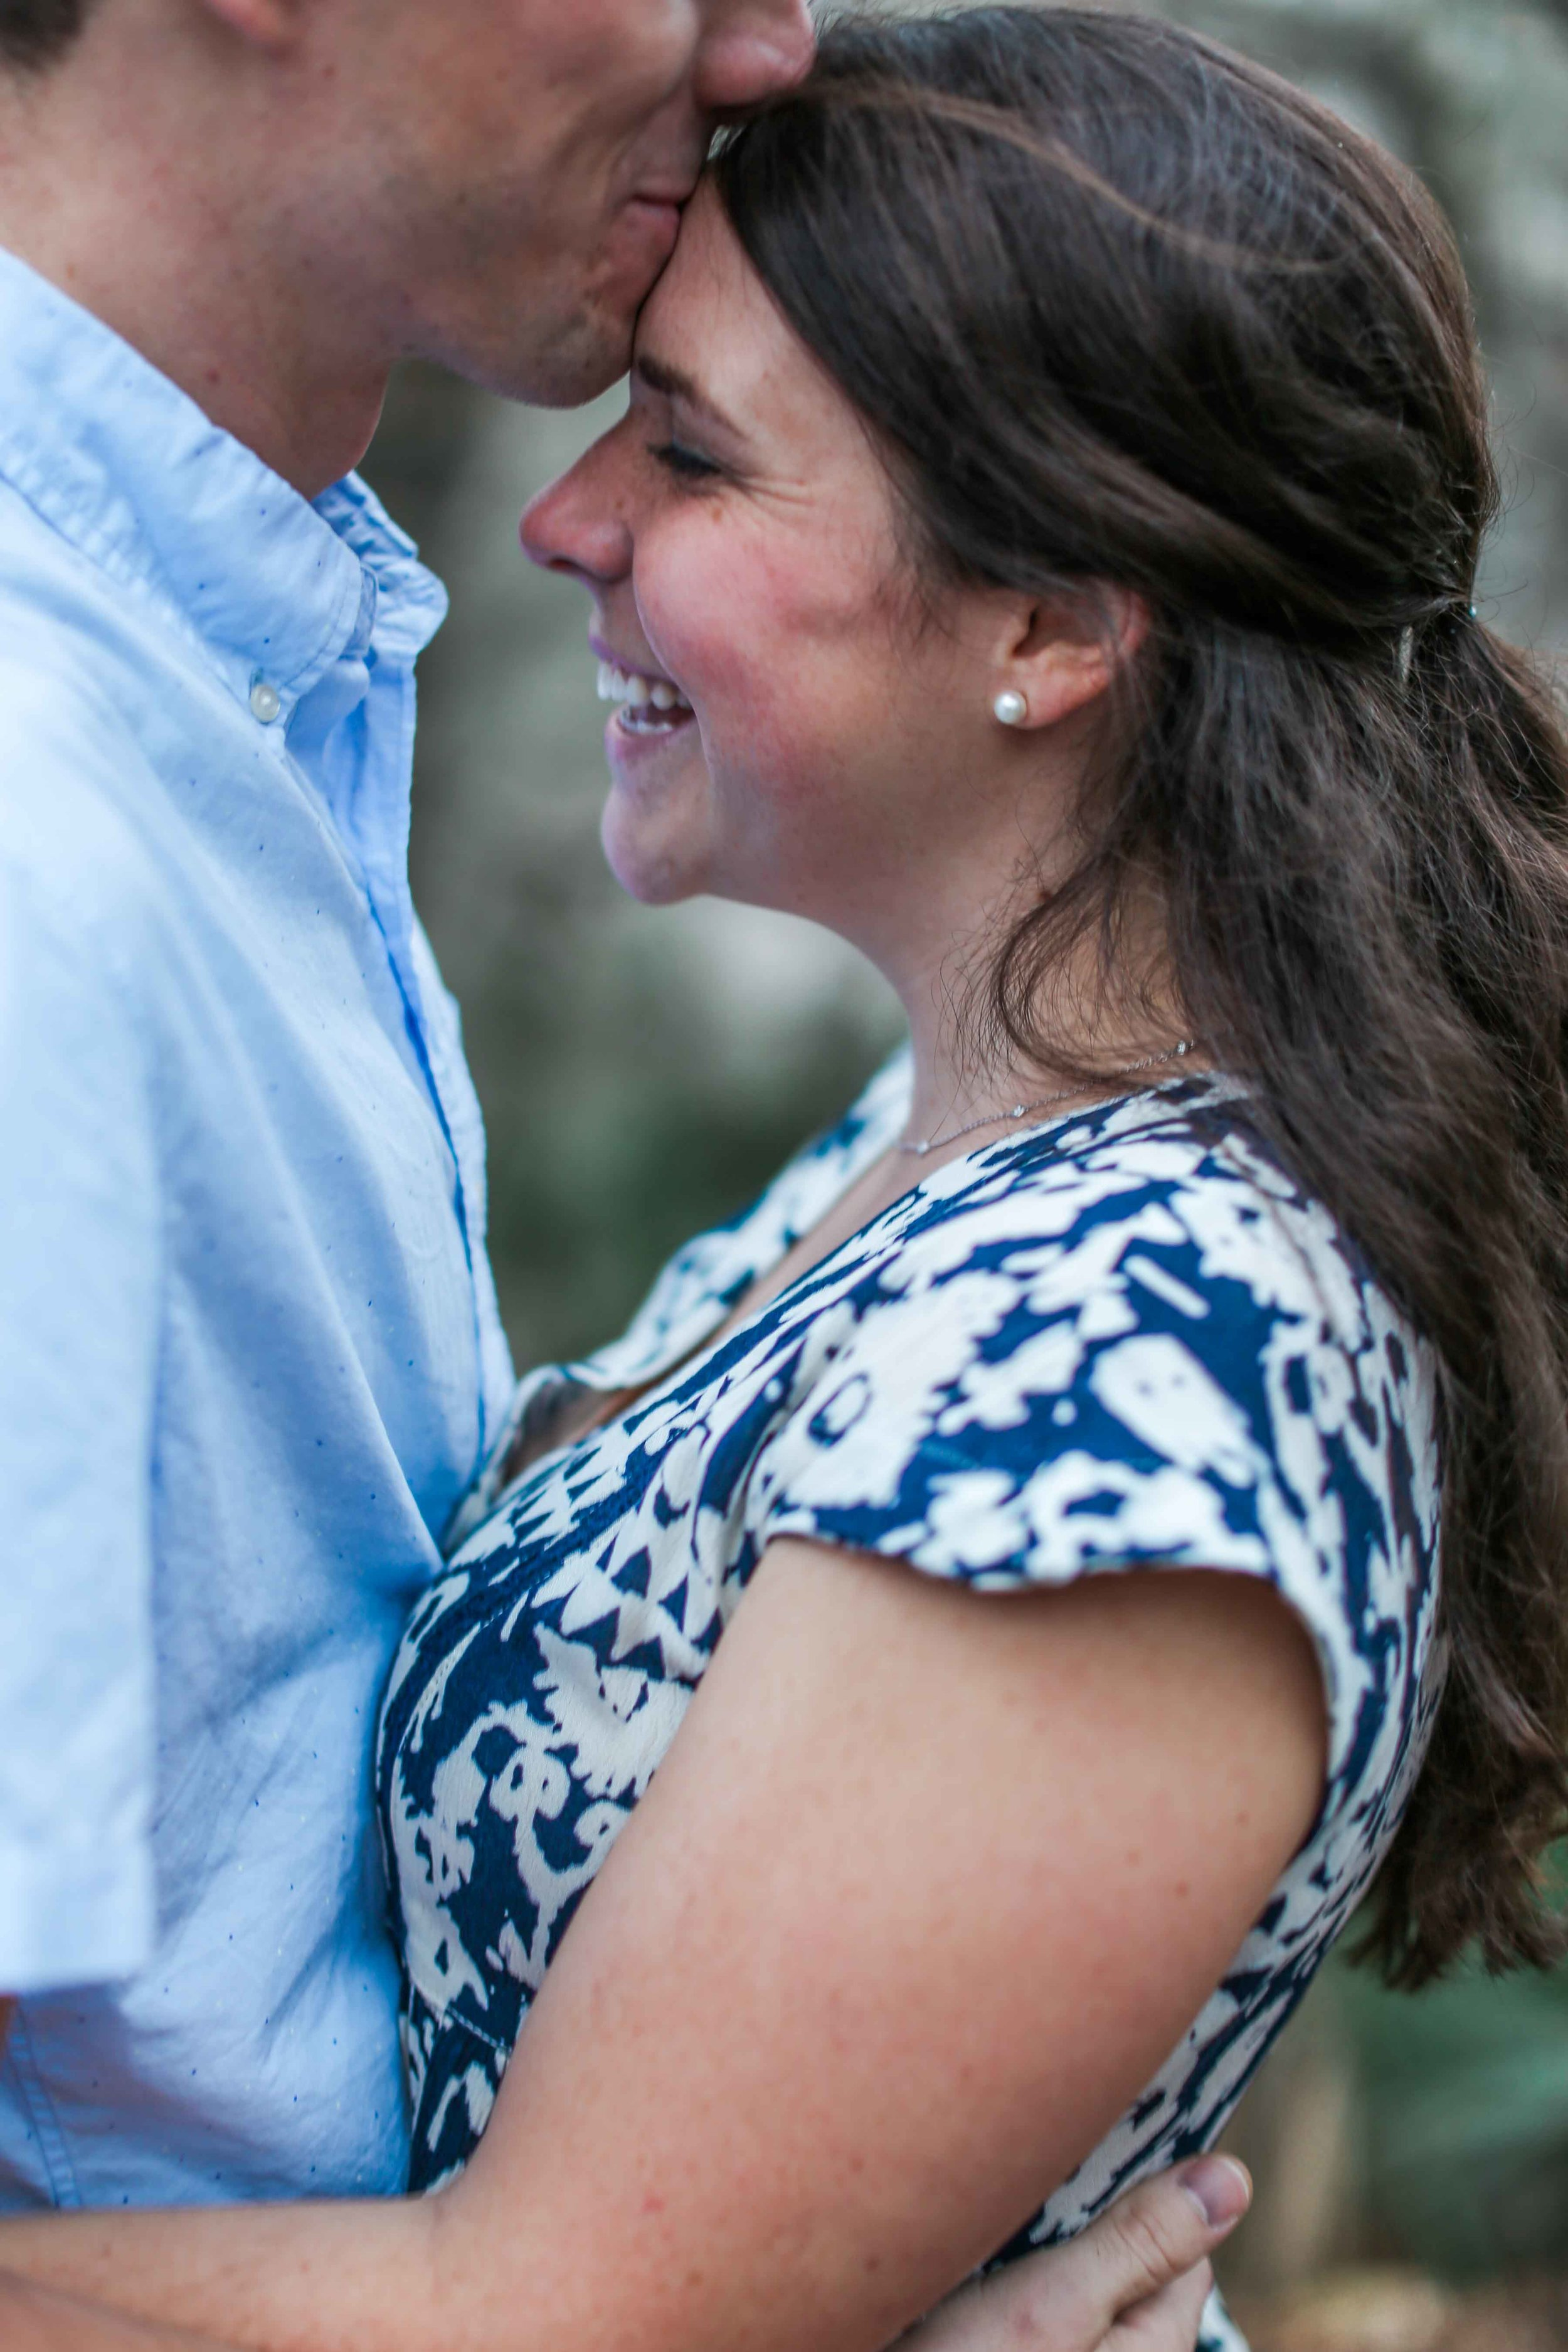 Ellie Fellbaum and Daniel Rogers Engagement Photos (513 of 525).jpg